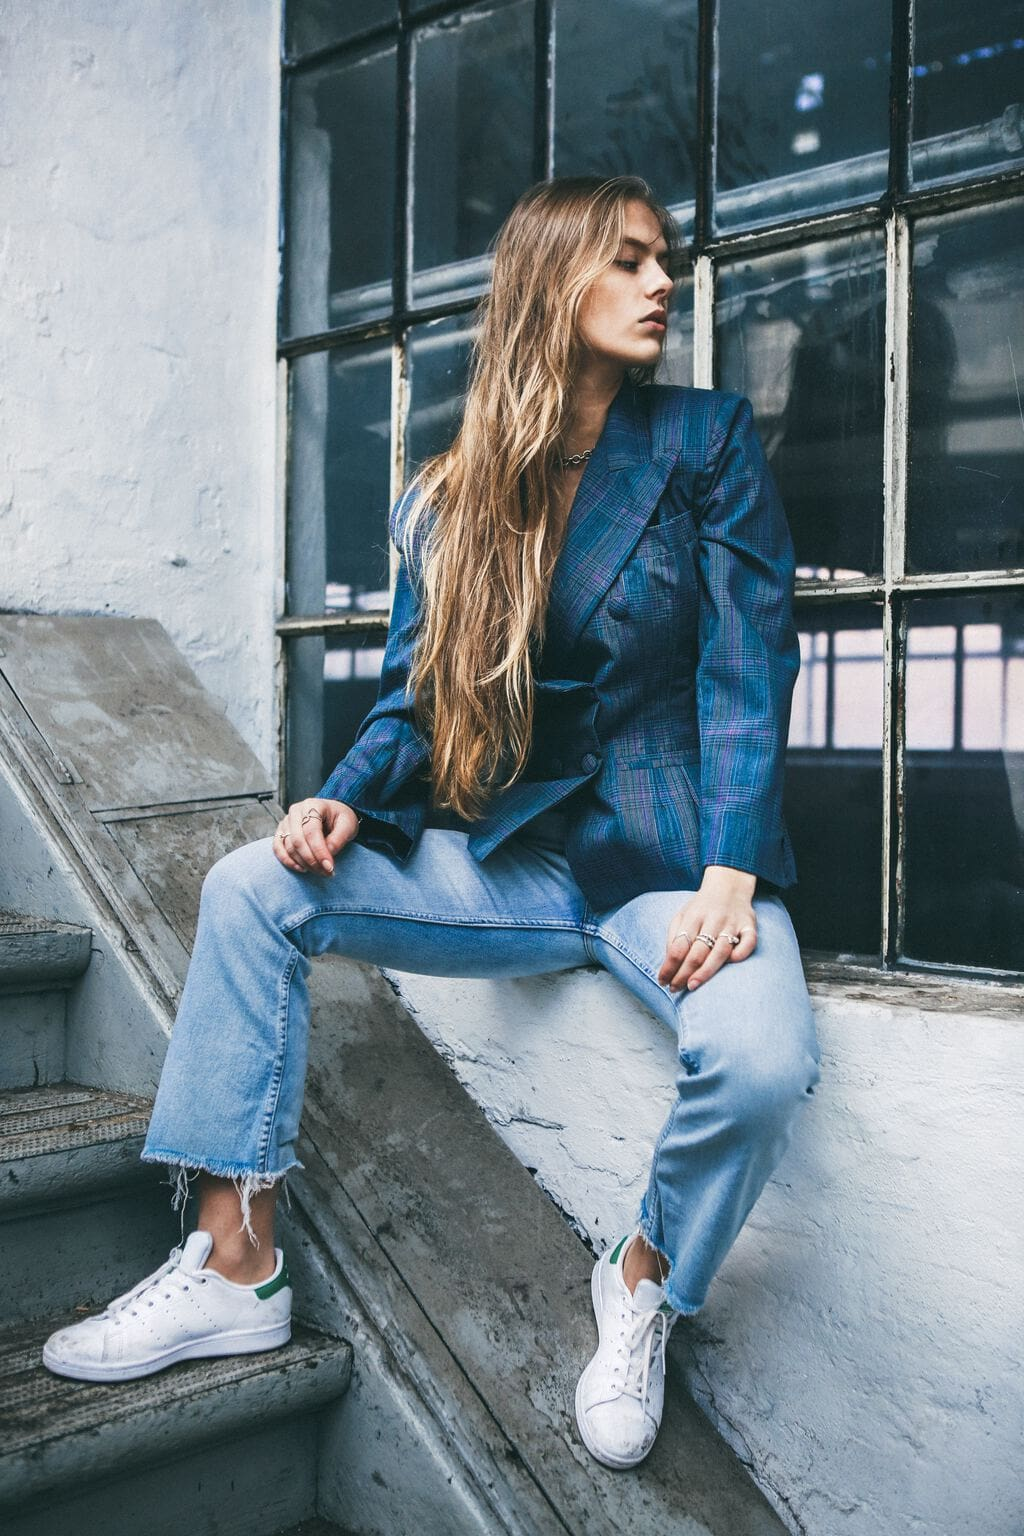 Woman with very long blond hair sitting on a window ledge outside next to stairs, looking away from the camera and wearing a blue plaid double-breasted blazer, loose-fitting light-wash jeans with distressed hems, and Adidas sneakers